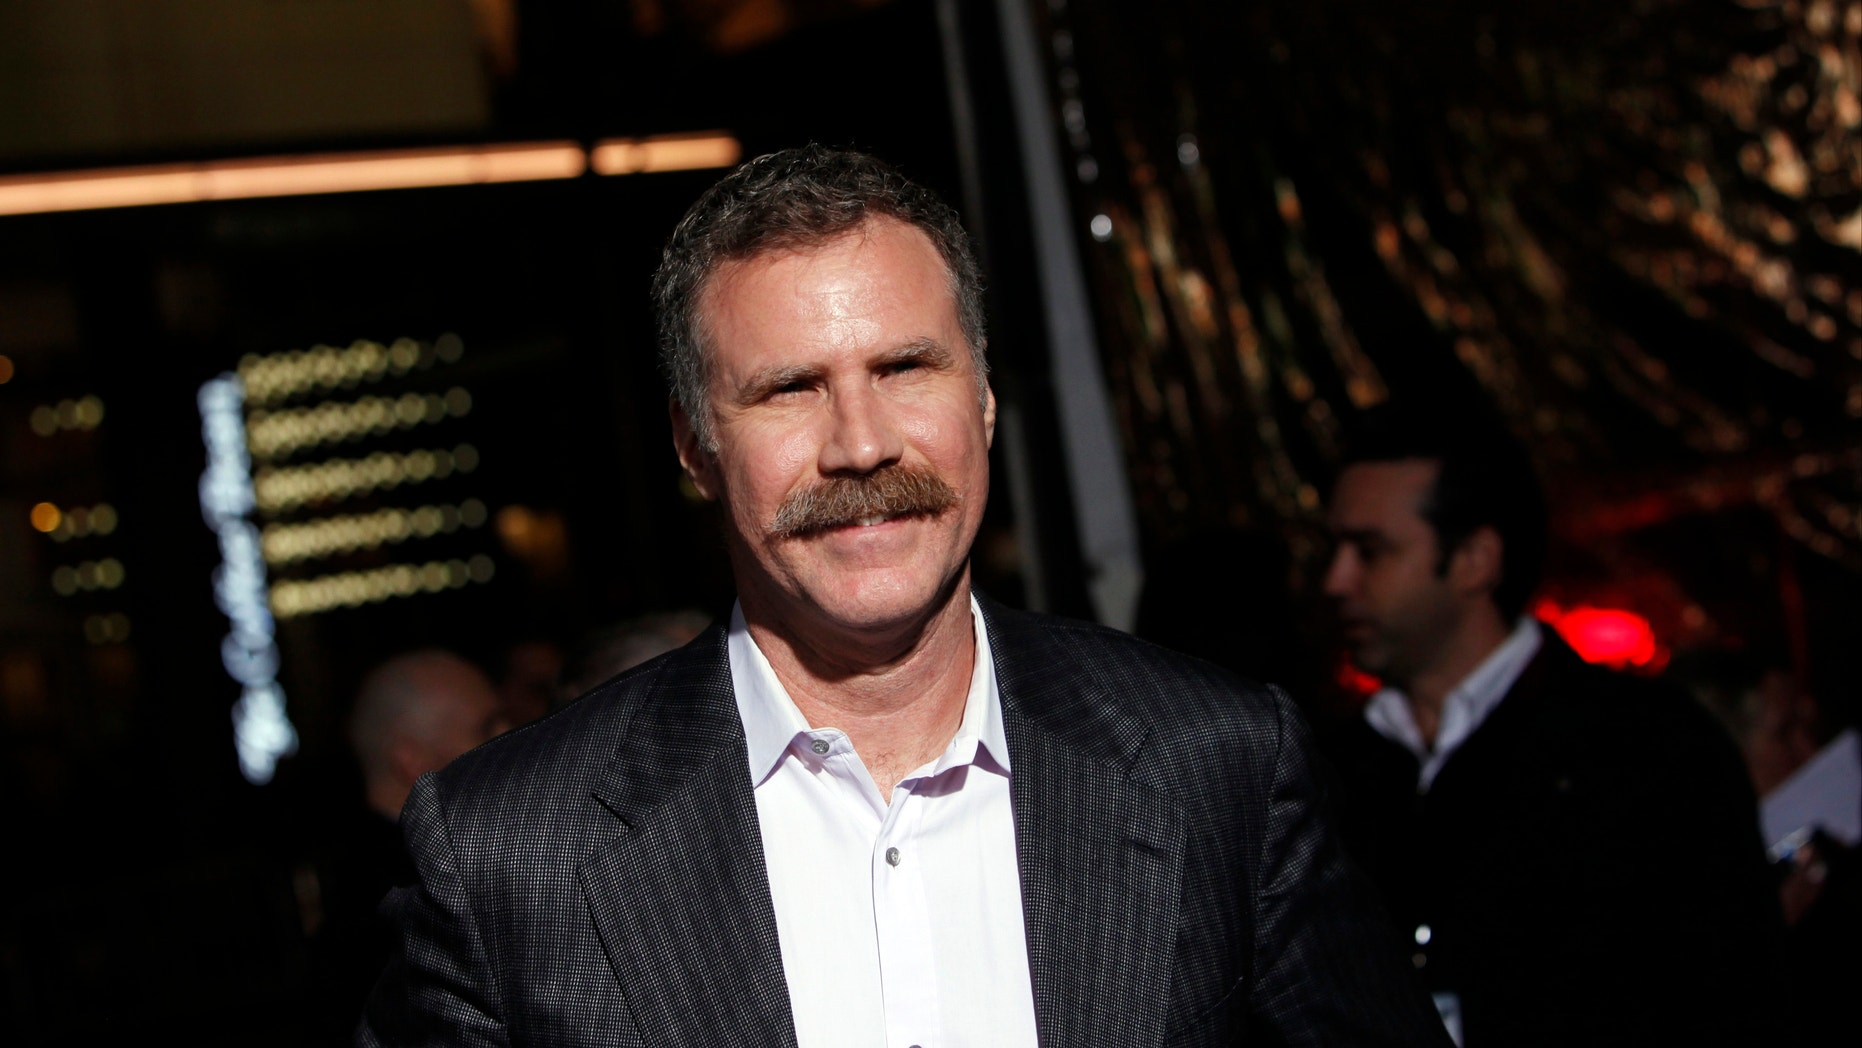 """Producer and actor Will Ferrell arrives at the premiere of the film """"Hansel and Gretel: Witch Hunters"""" at Grauman's Chinese Theatre in Hollywood, California January 24, 2013."""